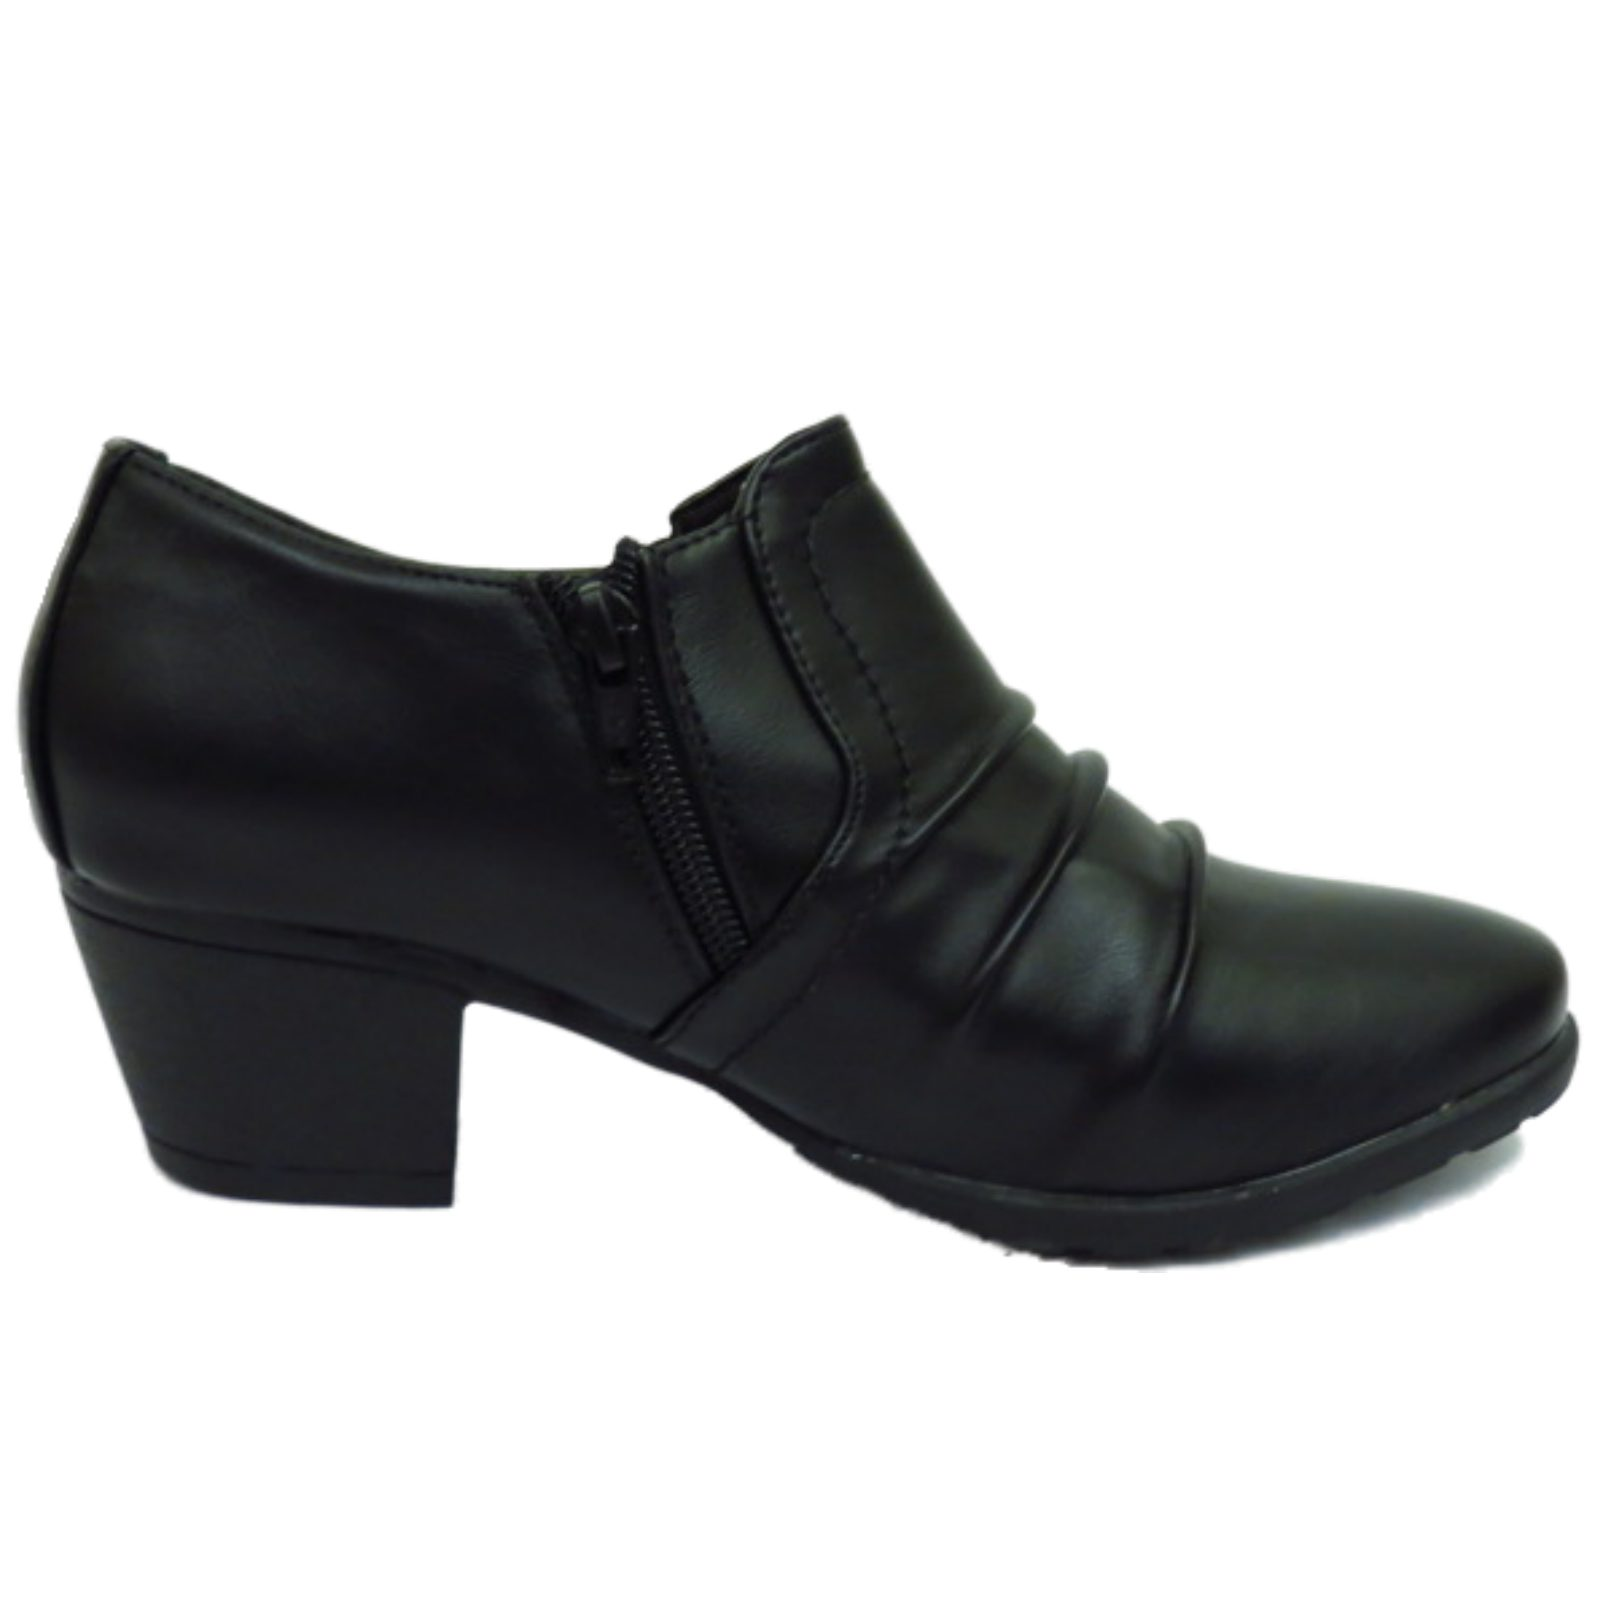 sentinel ladies black lowheel zipup ruched pixie boho ankle boots work shoes sizes